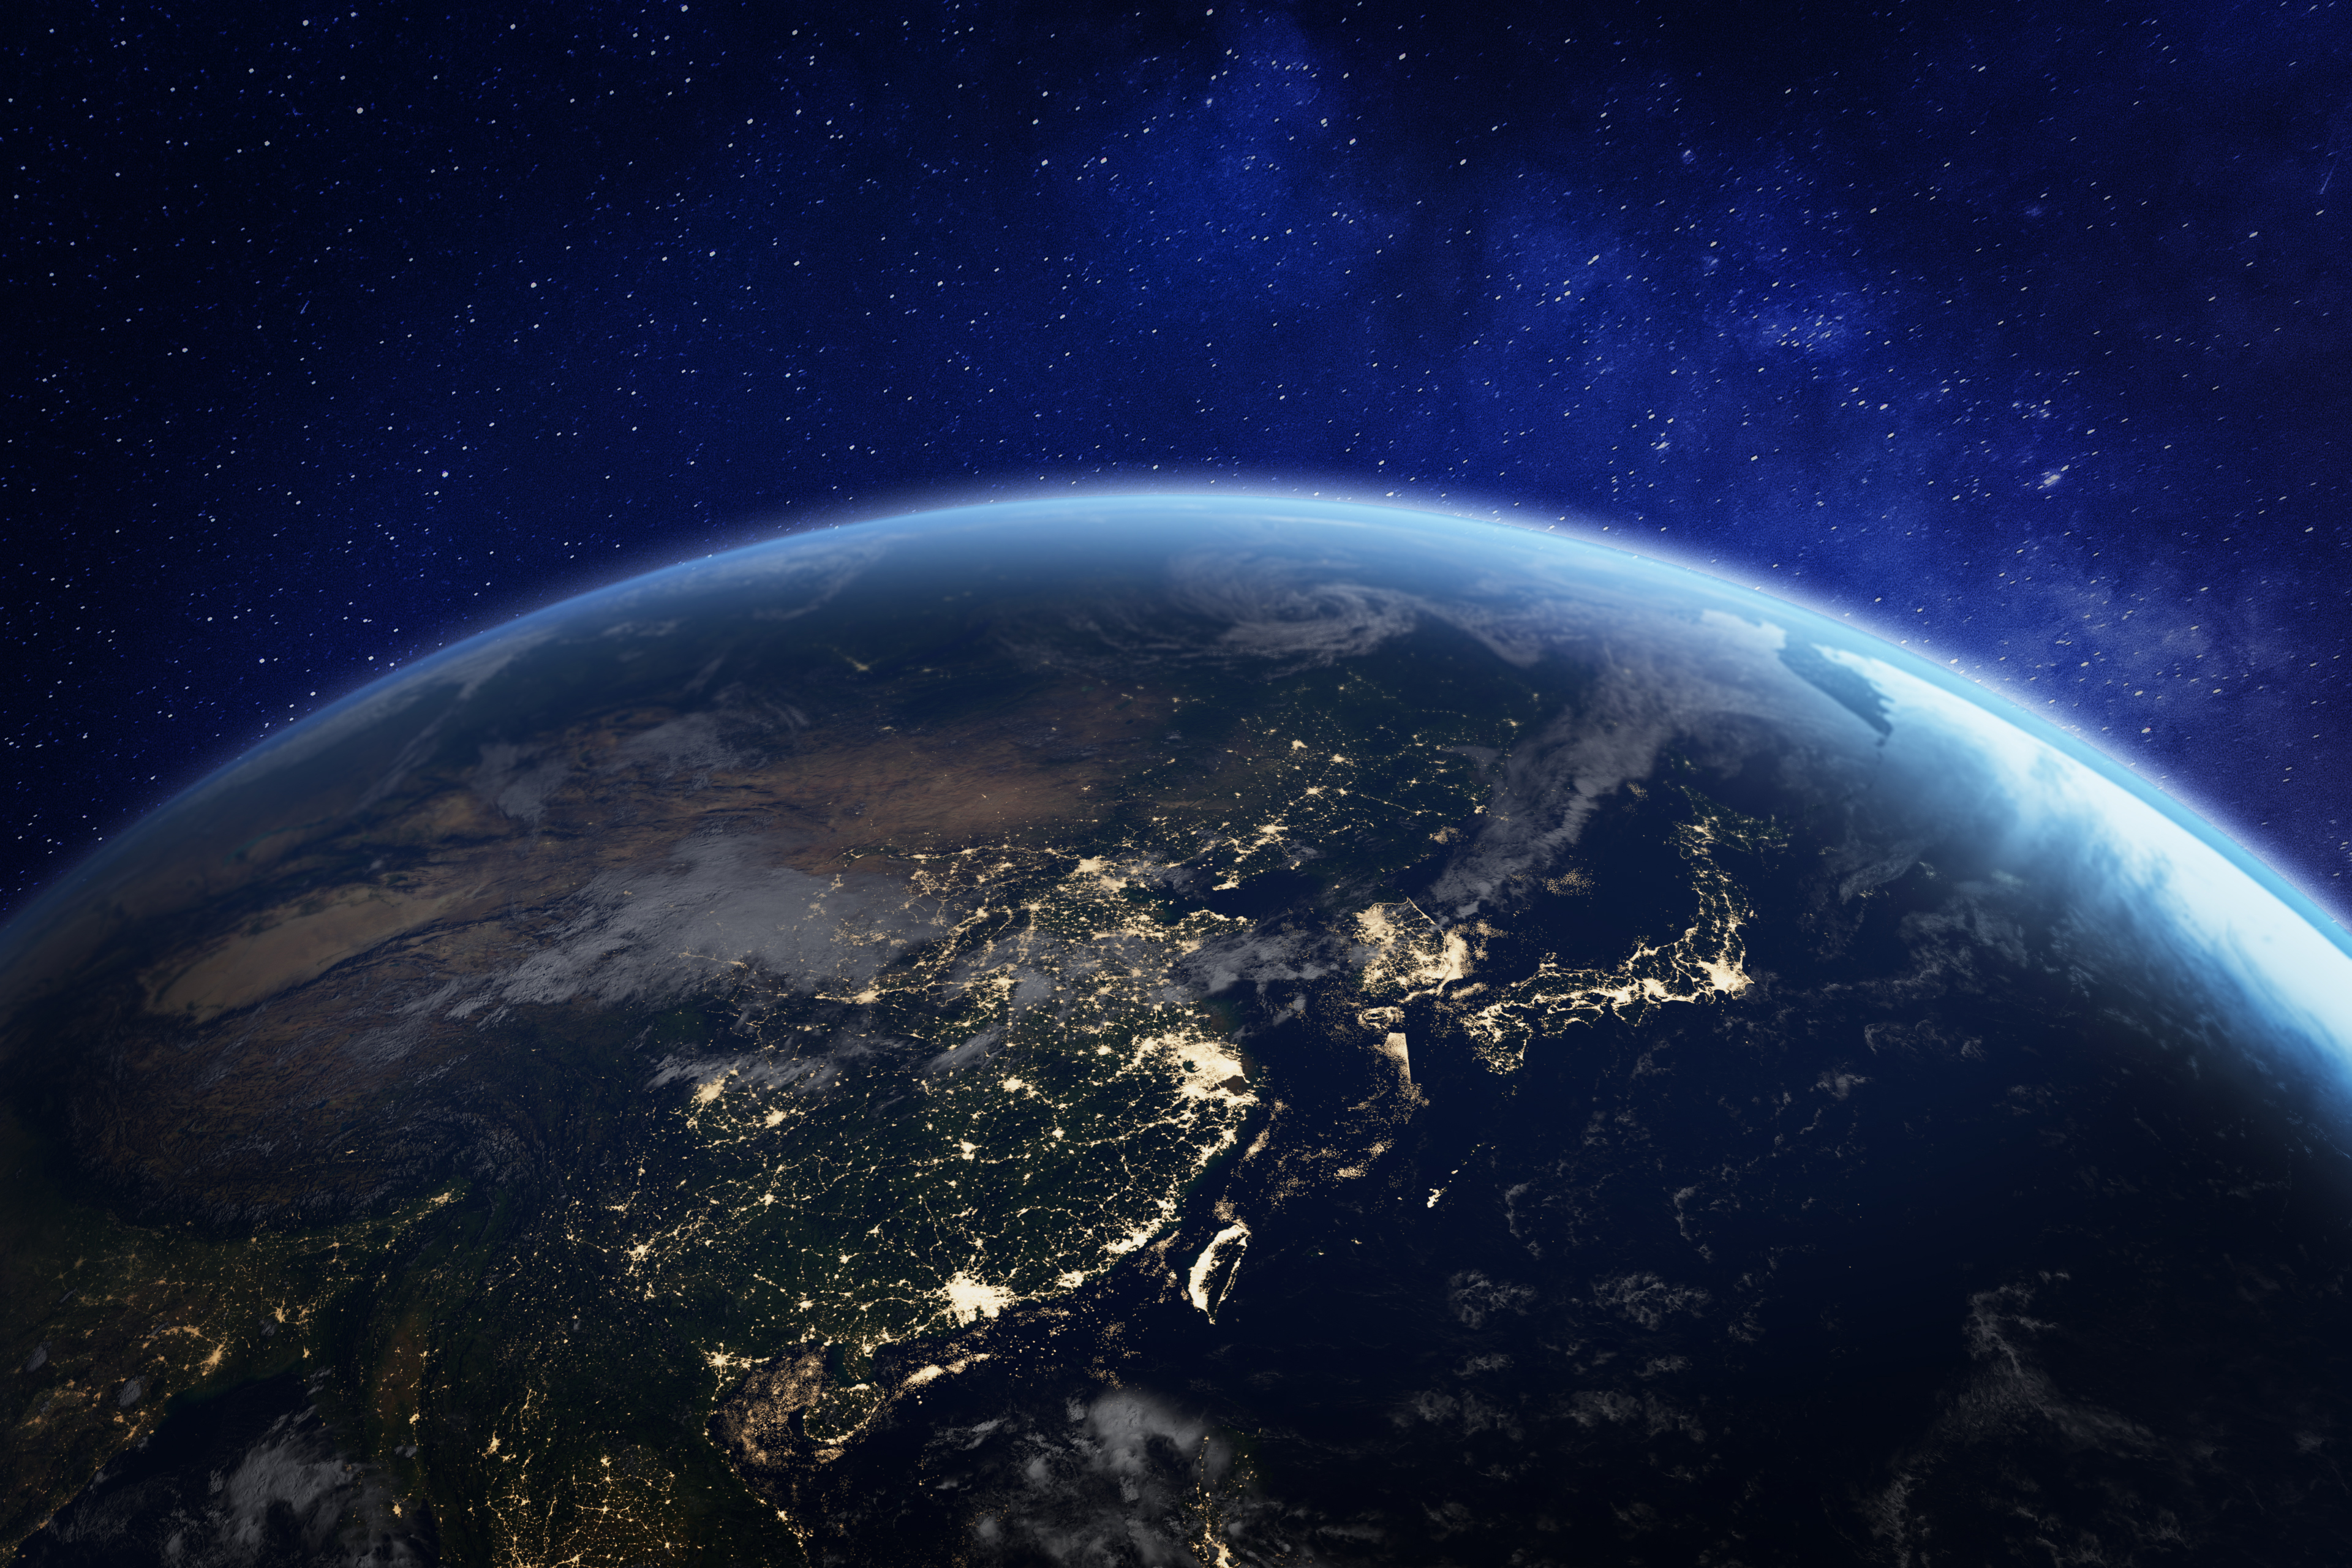 Asia at night from space with city lights showing human activity in China, Japan, South Korea, Taiwan and other countries, 3d rendering of planet Earth, elements from NASA (https://eoimages.gsfc.nasa.gov/images/imagerecords/57000/57752/land_shallow_topo_2048.jpg)